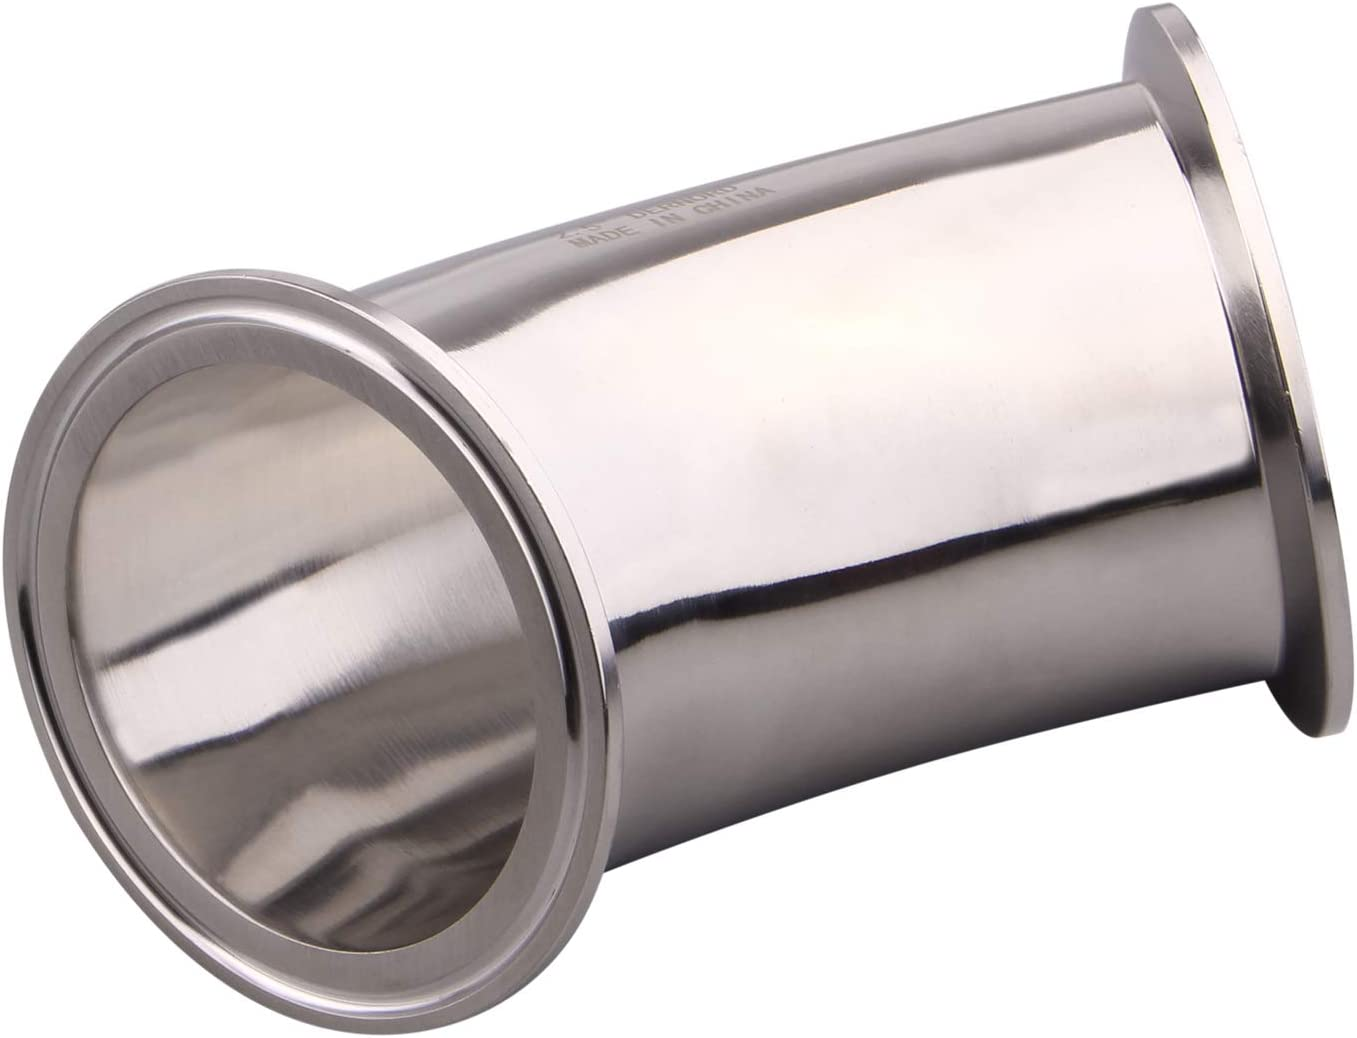 2 Inch Tube OD Stainless Steel 304 Pipe Fitting Fits Tri Clamp 2 inch DERNORD 45 Degree Elbow